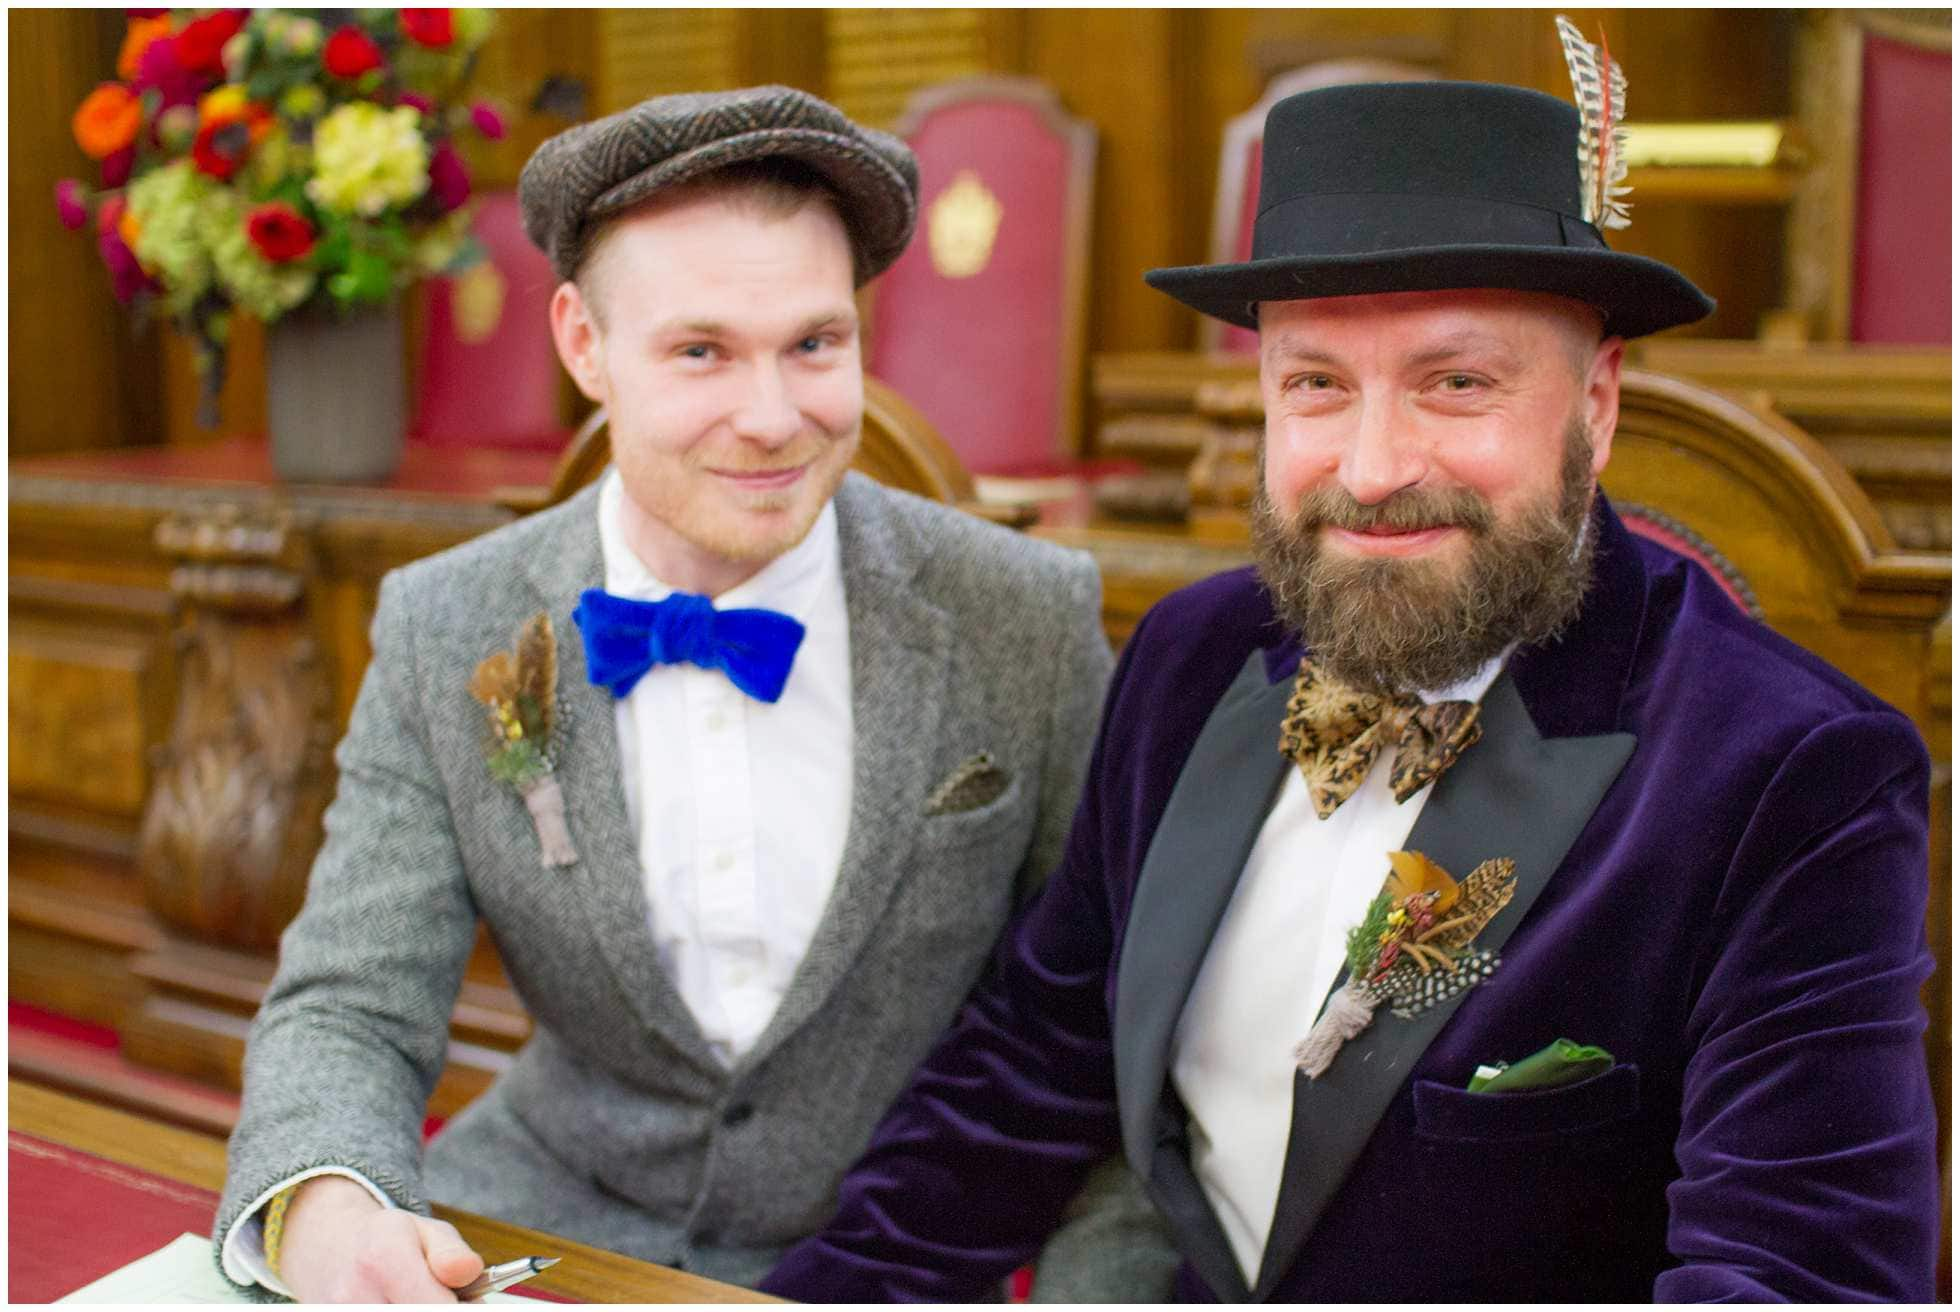 Signing the register at islington town hall gay wedding photographer